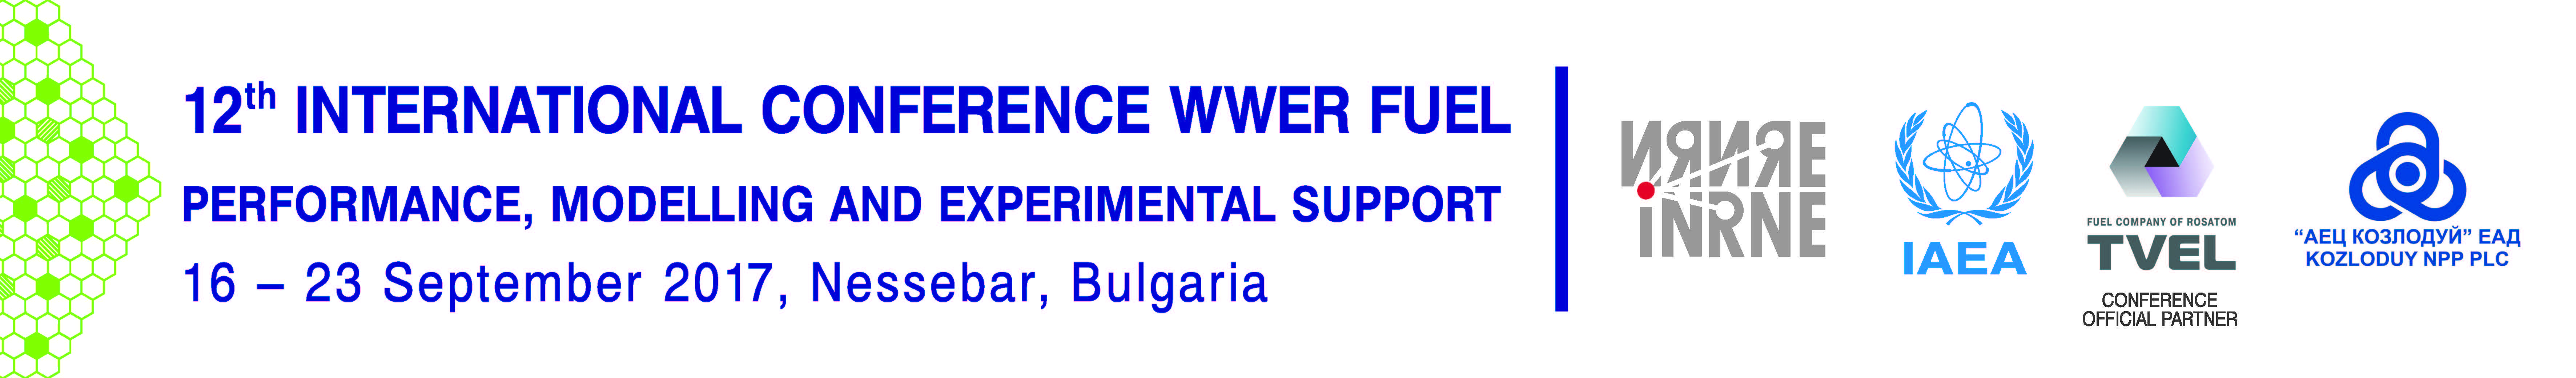 12th INTERNATIONAL CONFERENCE ON WWER FUEL PERFORMANCE, MODELLING AND EXPERIMENTAL SUPPORT